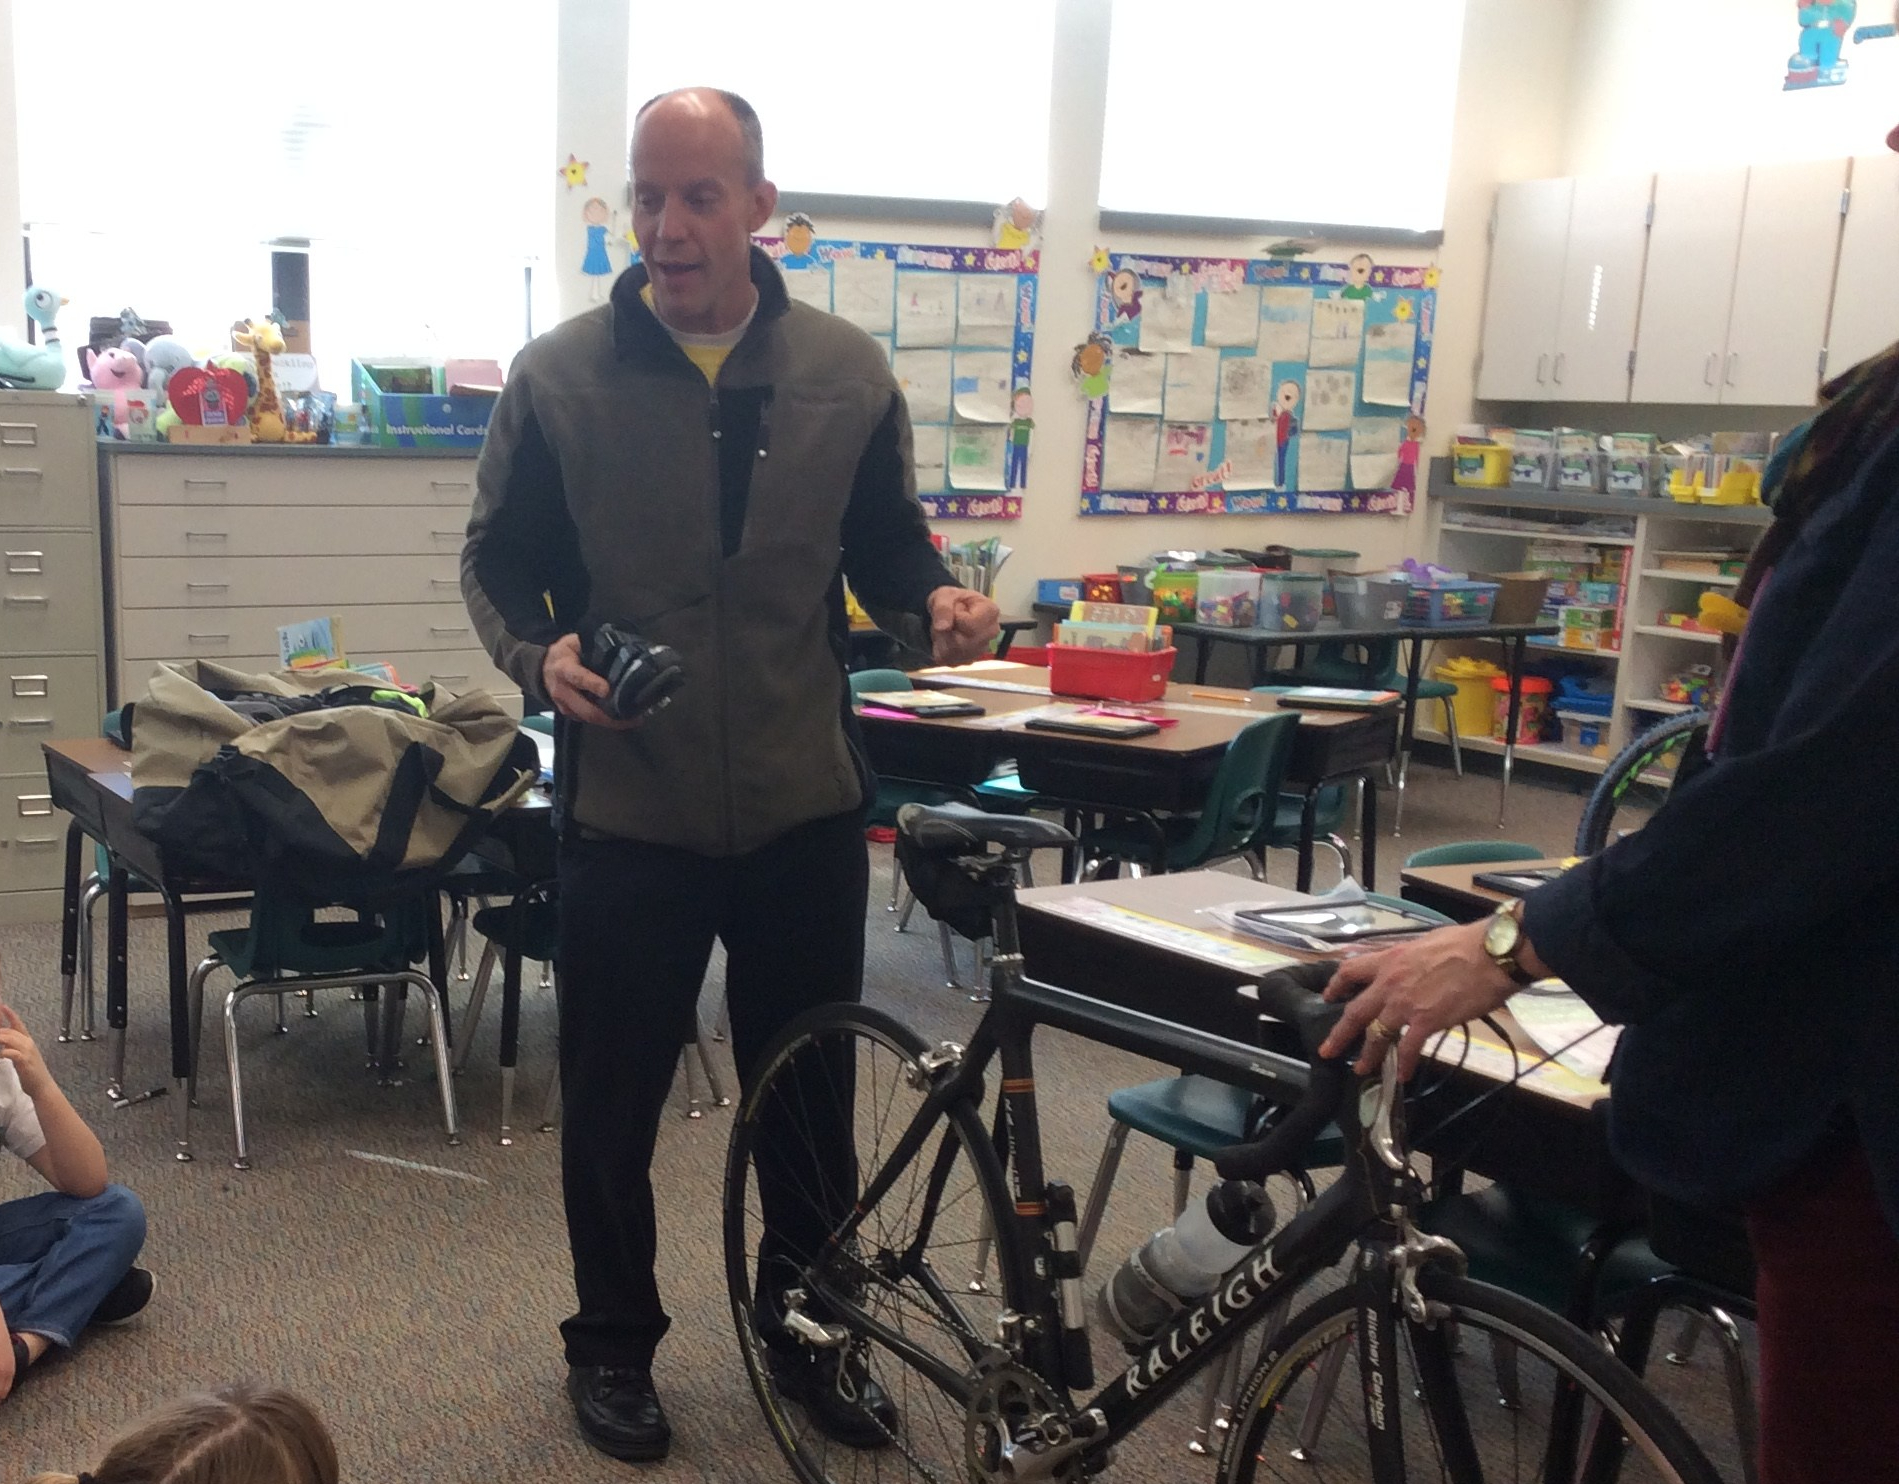 Mr. LaBau presenting about bikes